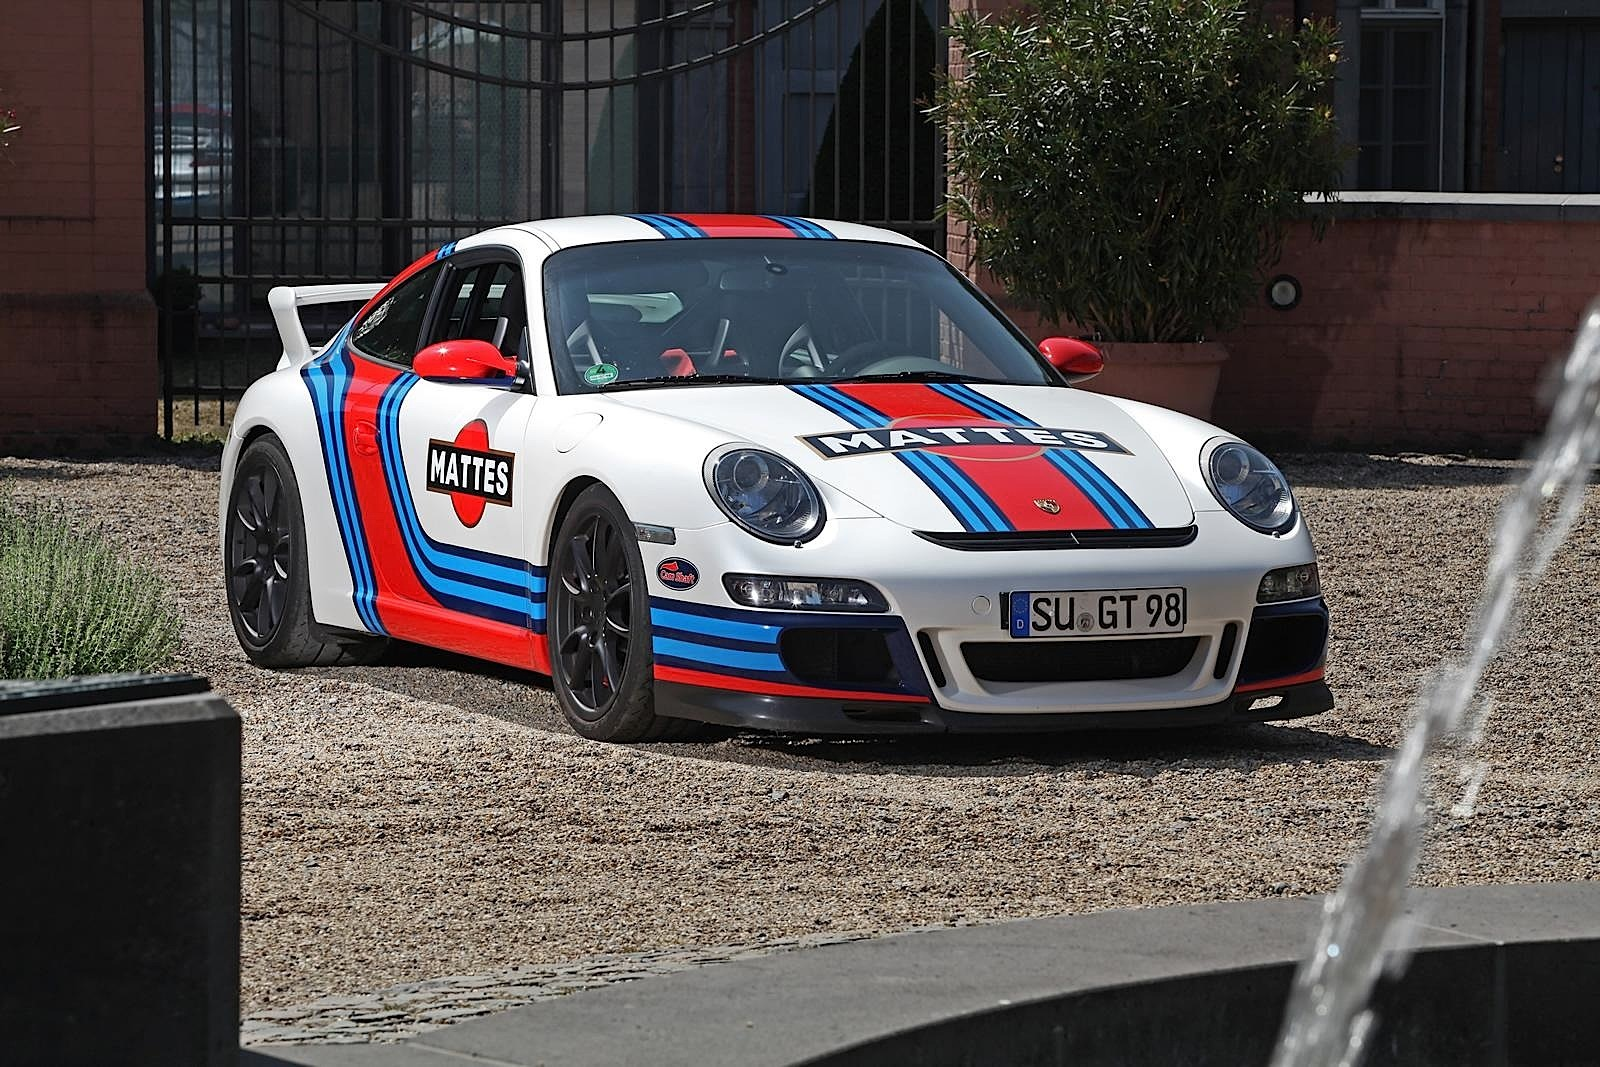 Porsche 911 Gt3 997 Gets Martini Livery Via Cam Shaft